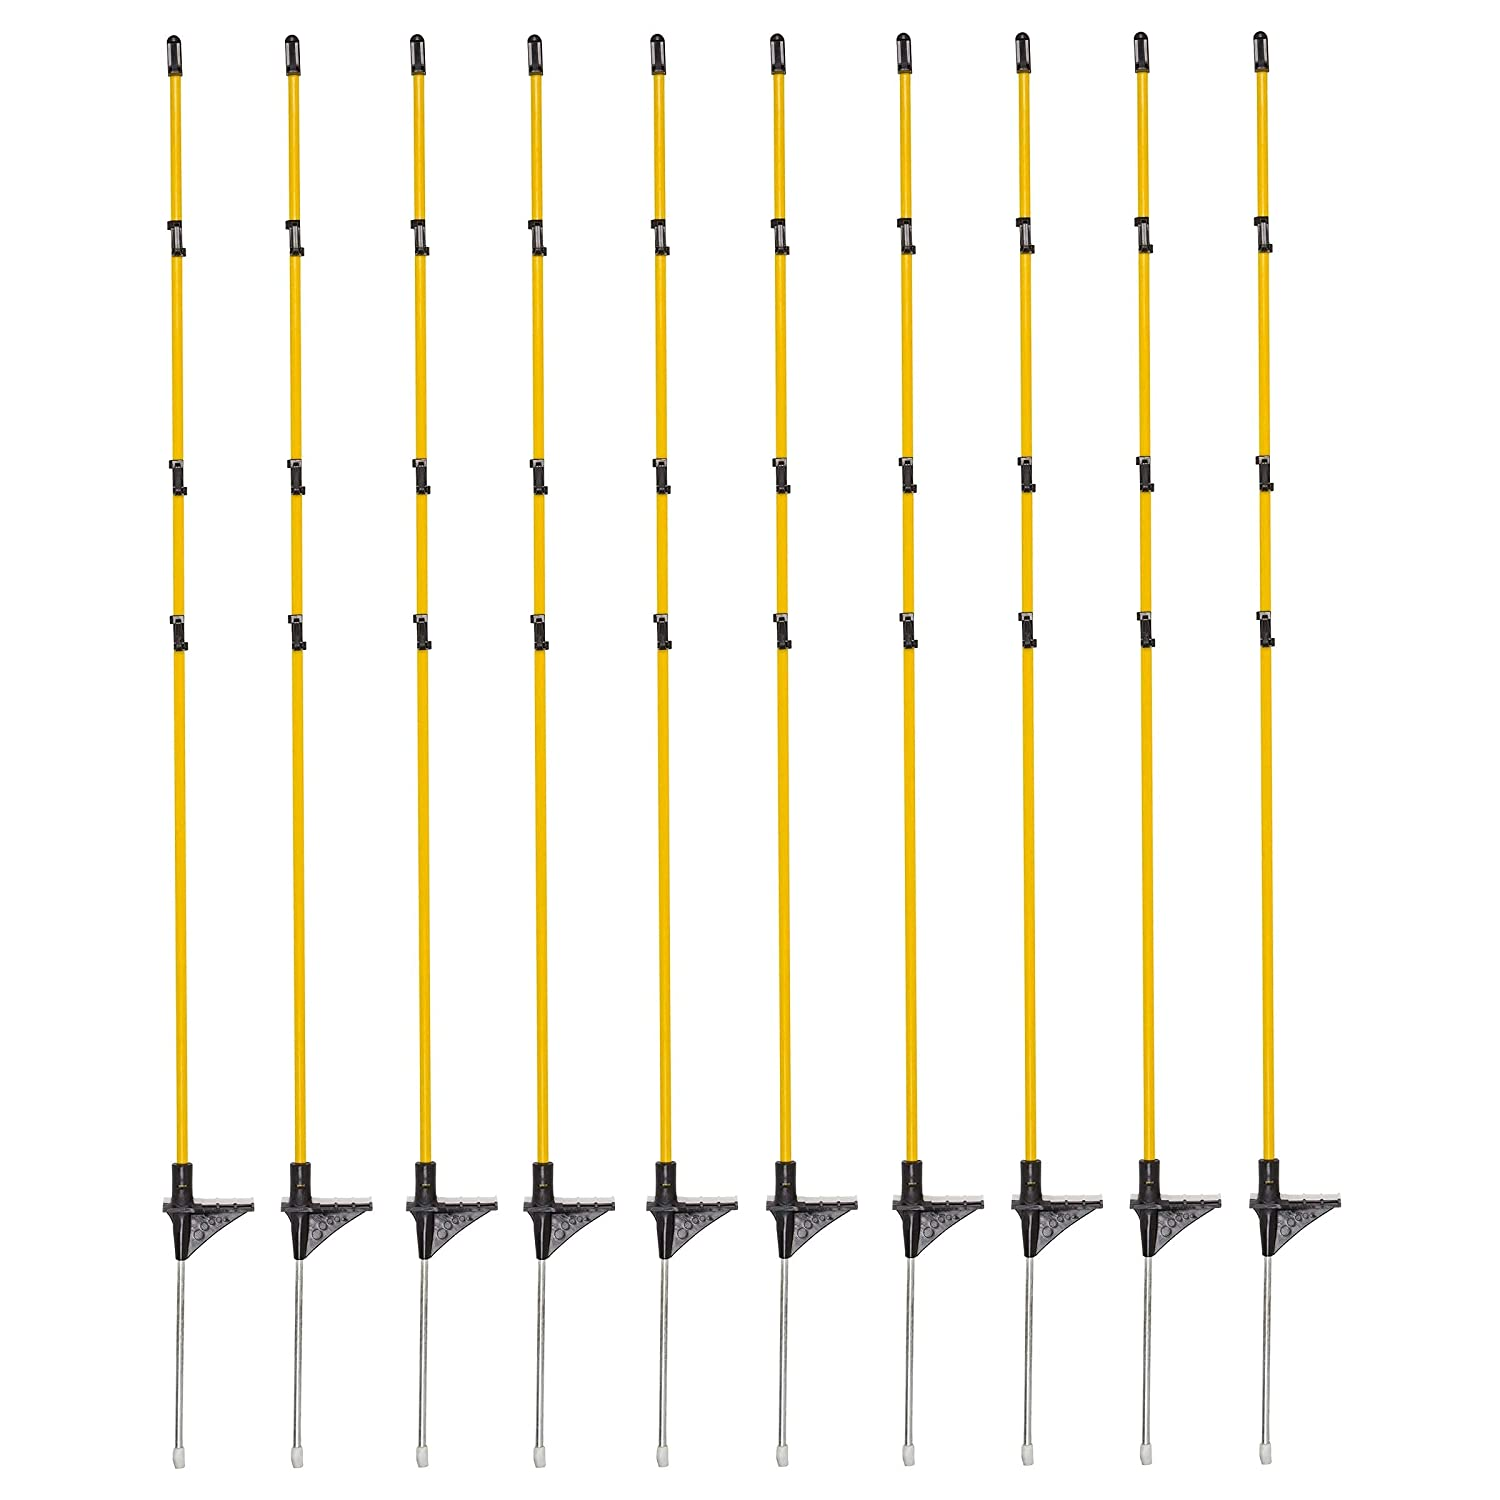 Fiberglass Step in Fence Posts 46 inch(10) Electric Fence Posts, Temporary Fence Stakes for Dog Fence, Snow Fence, Garden Protection. Portable Fence Ideal for Temporary Fencing or Electric Fencing